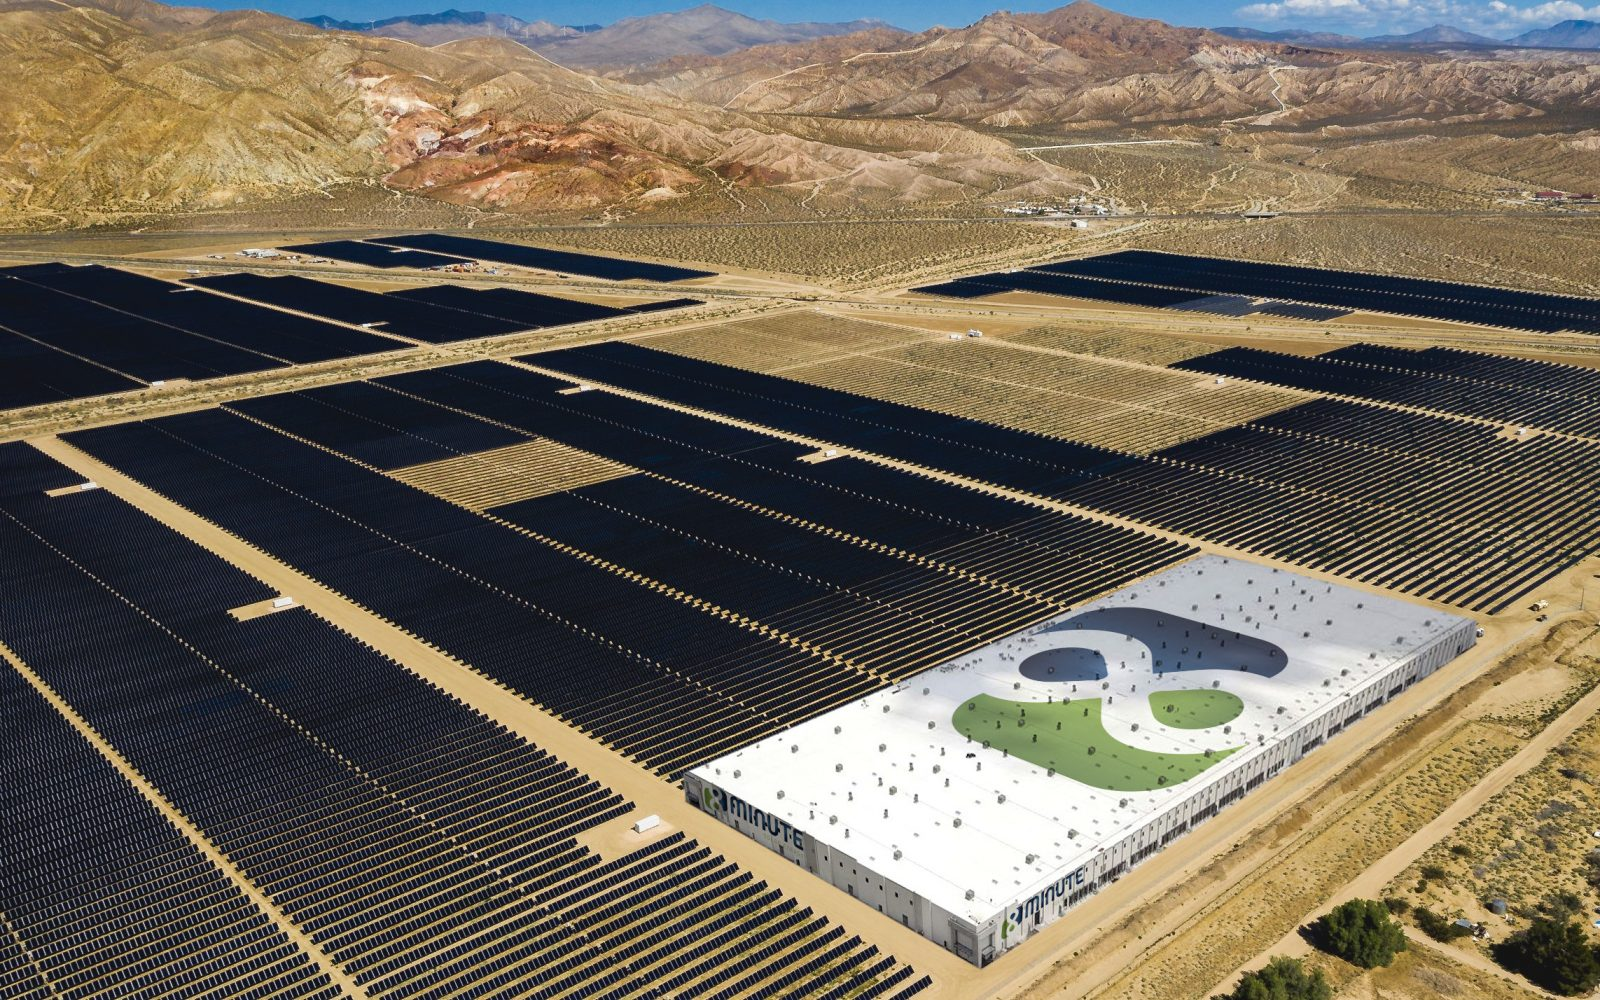 California's ISO has said it needs more solar and energy storage projects, like the Eland project being brought forward by 8minute Solar Energy, to avert power crises. Image: 8minute Solar Energy.